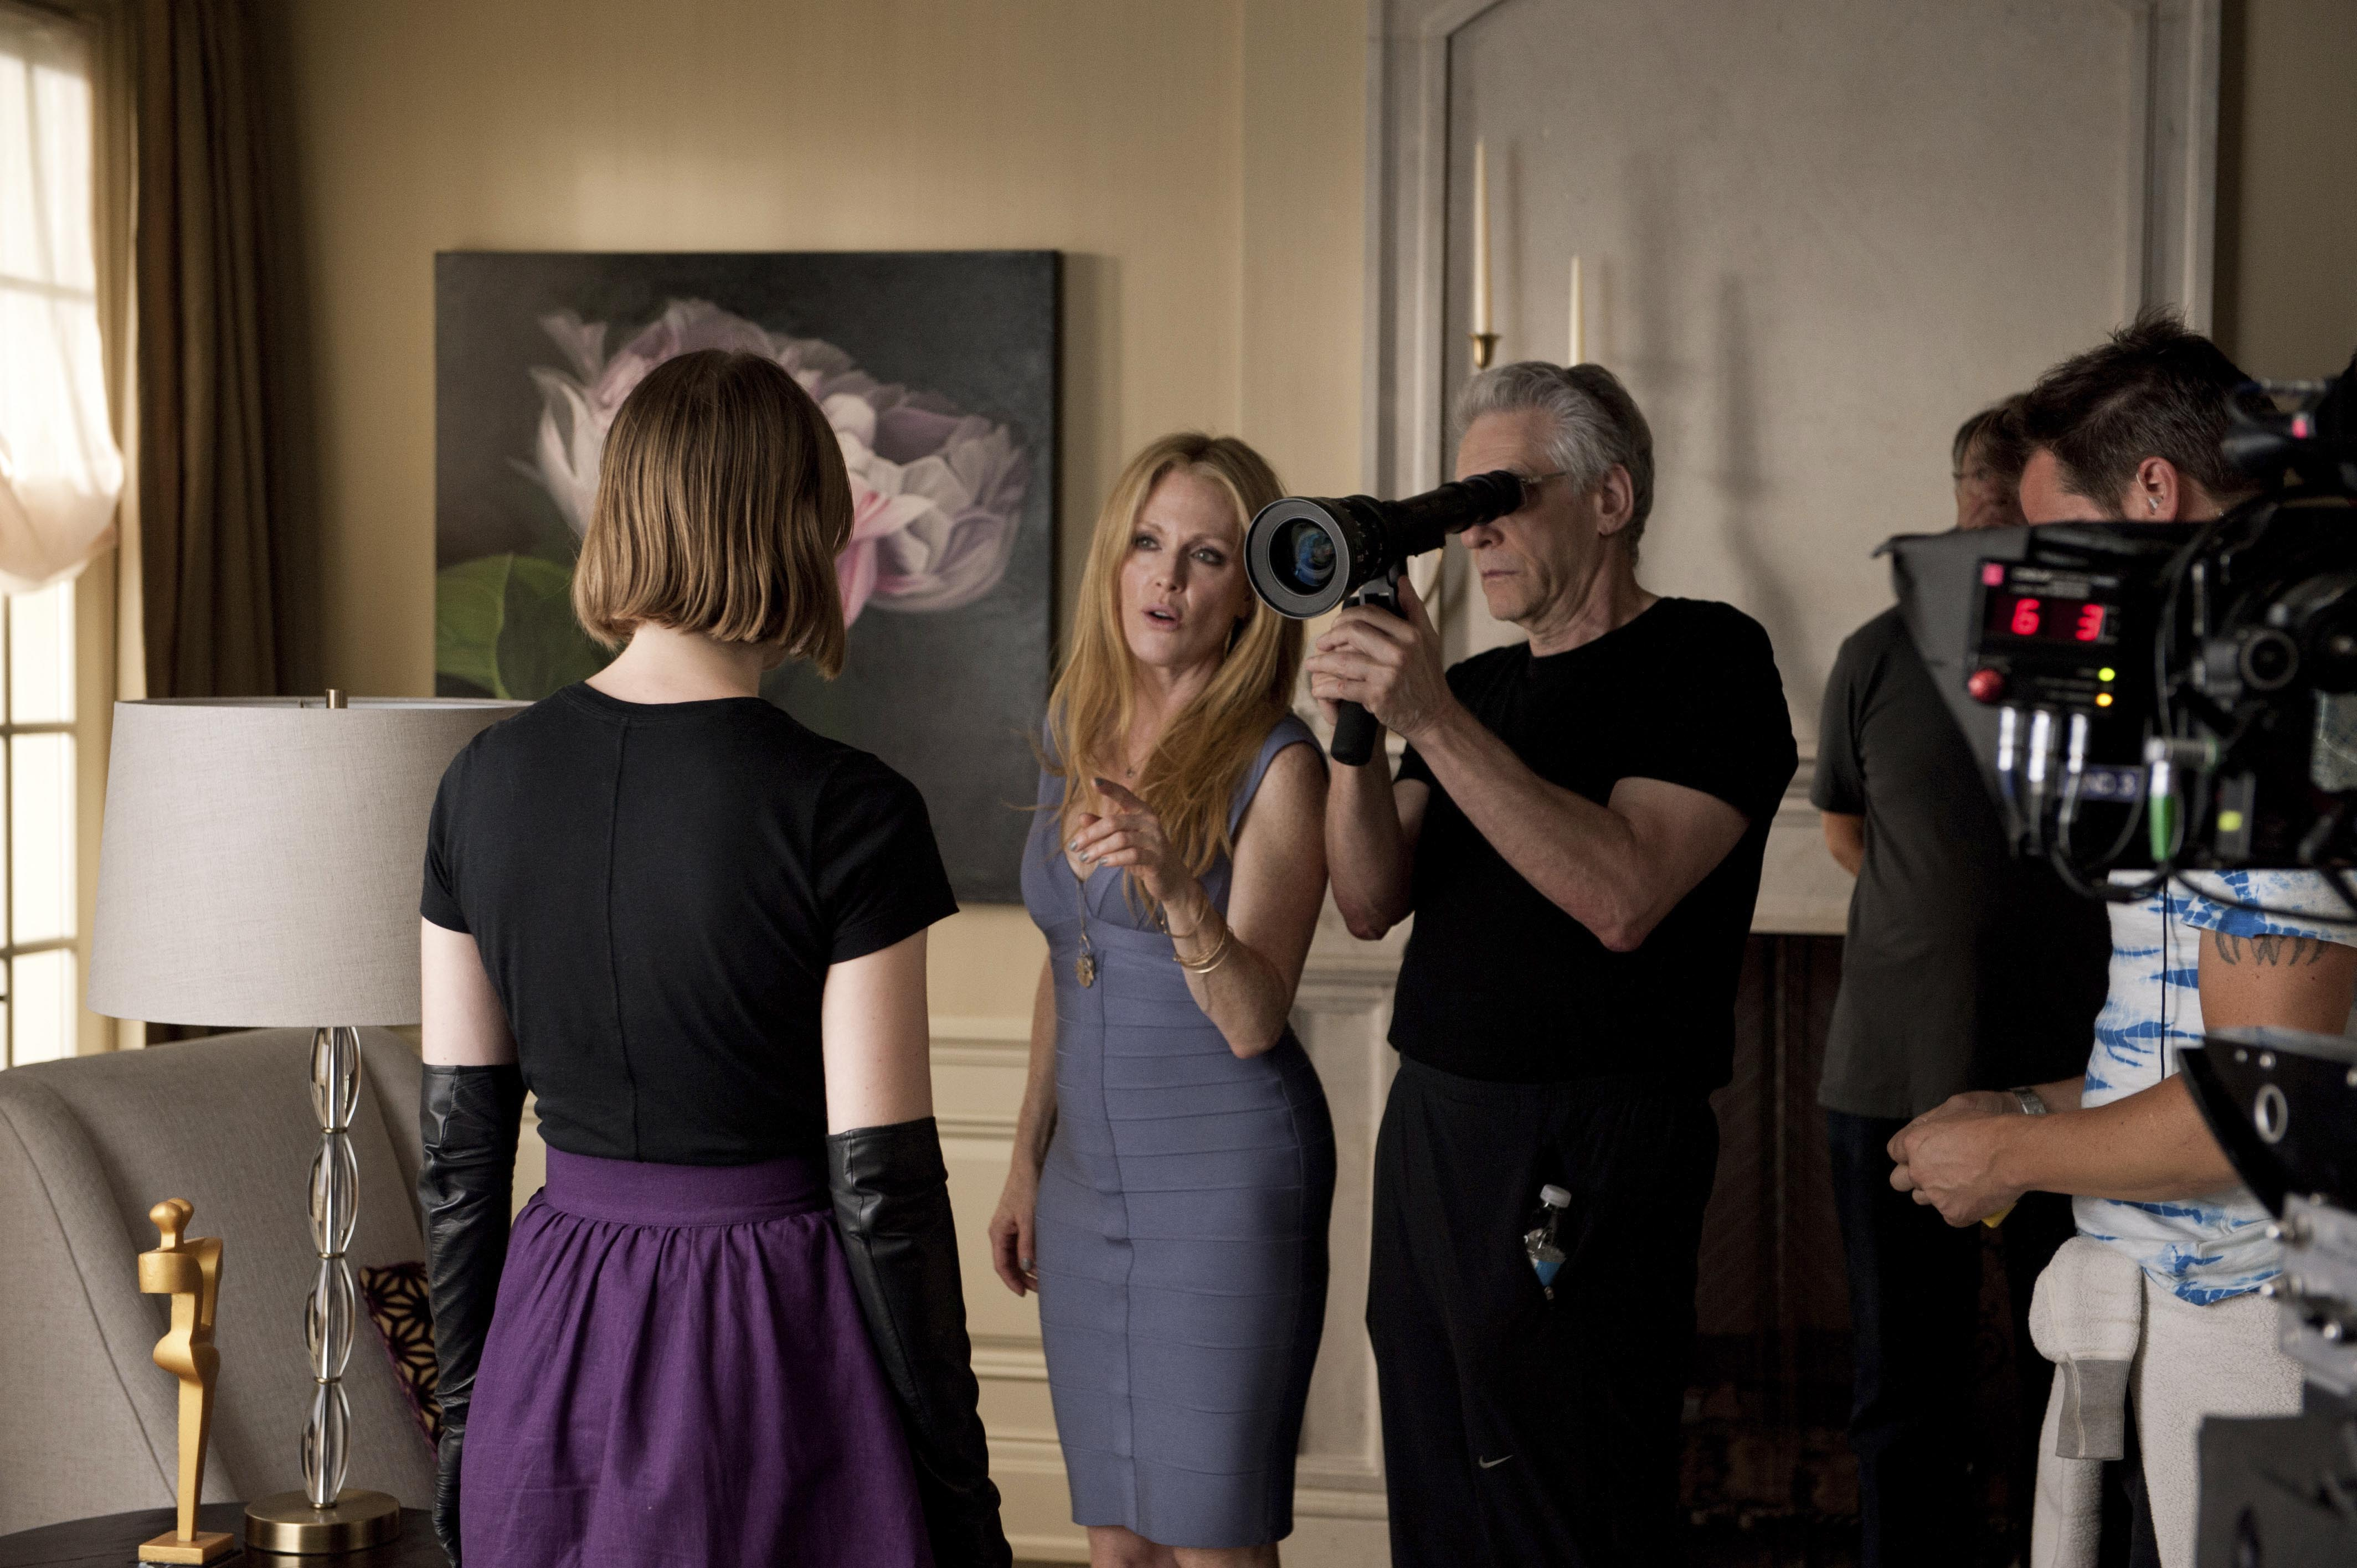 No Merchandising. Editorial Use Only. No Book Cover Usage.Mandatory Credit: Photo by Caitlin Cronenberg/Prospero/Sentient/Sbs Prods./Integral Film/Kobal/REX/Shutterstock (5883930s) Mia Wasikowska, Julianne Moore, David Cronenberg Maps To The Stars - 2014 Director: David Cronenberg Prospero Pictures / Sentient Entertainment / Sbs Productions / Integral Film USA / CANADA On/Off Set